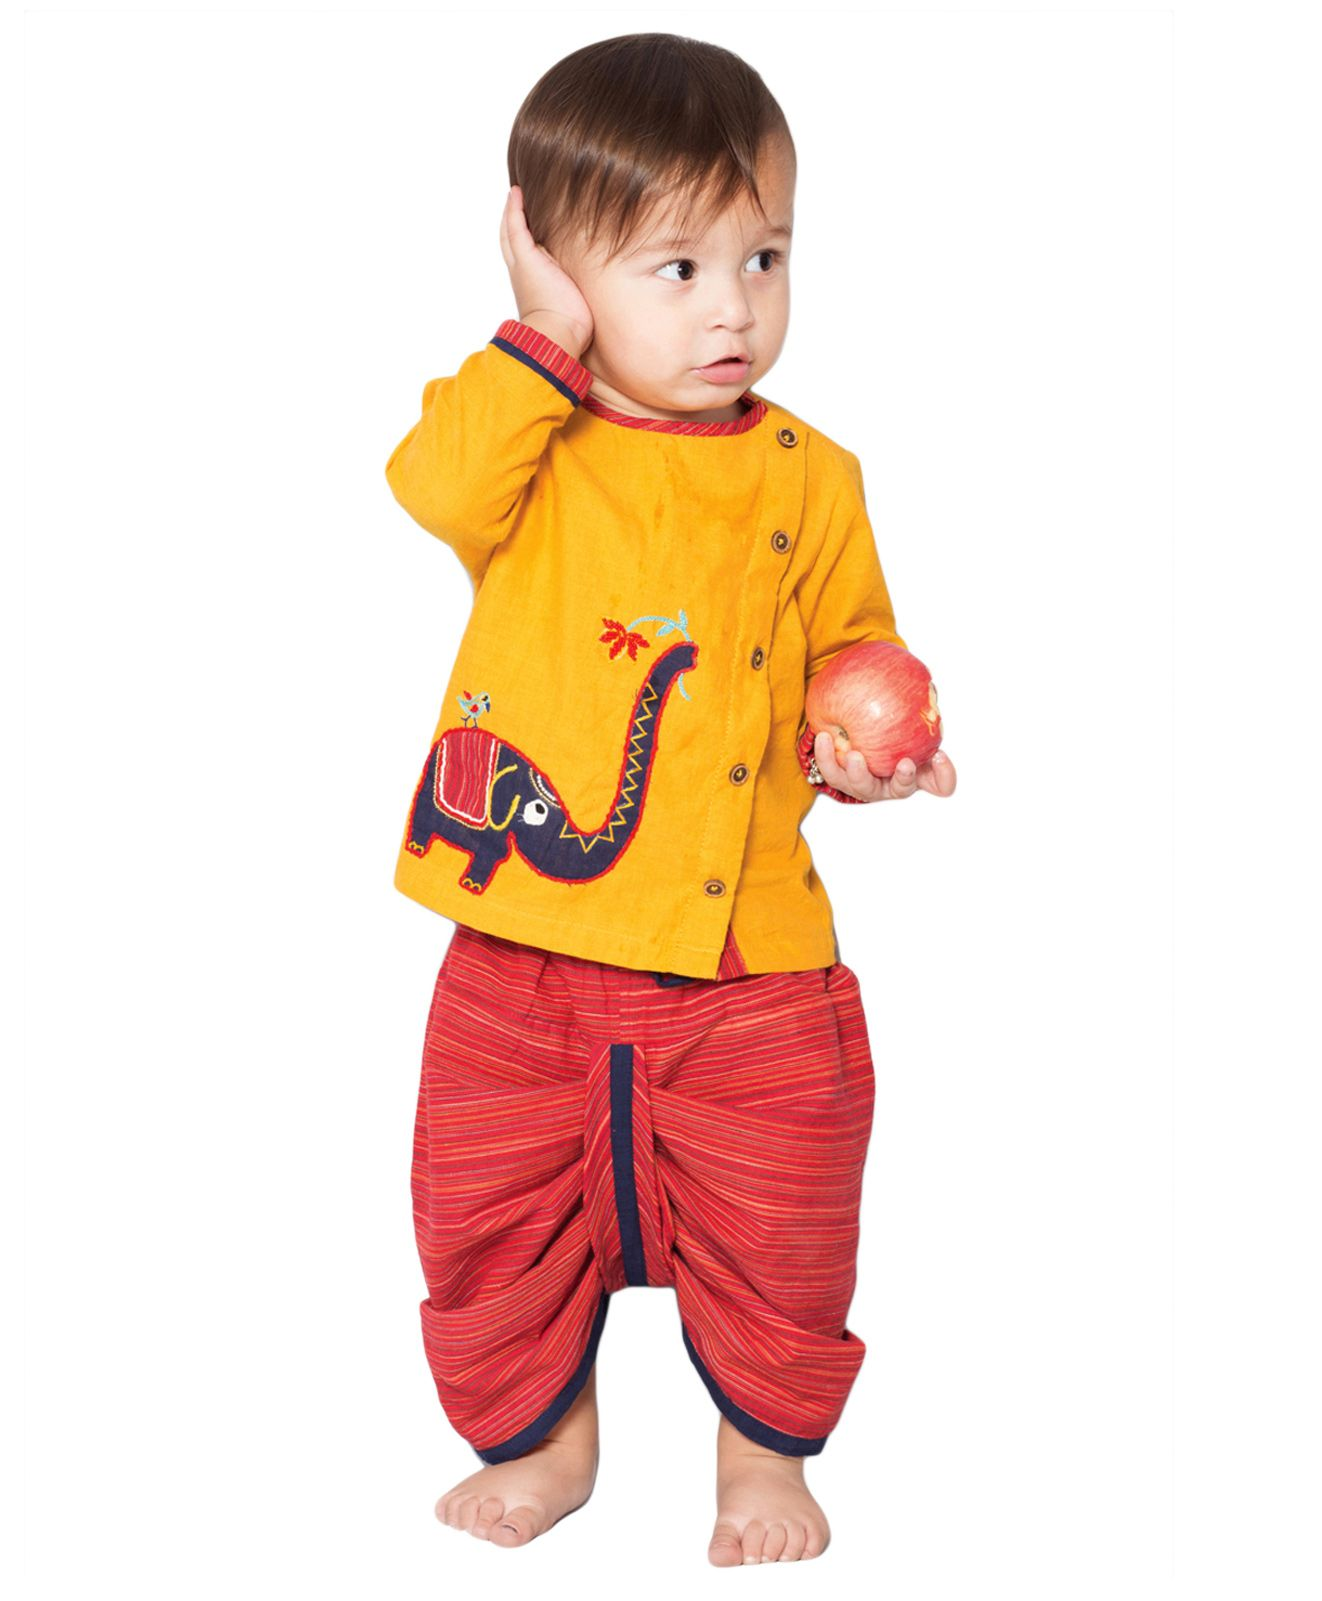 a3820236 Buy Tiber Taber Elephantasia Dhoti Kurta Set Yellow & Red for Boys (6-12  Months) Online in India, Shop at FirstCry.com - 910379